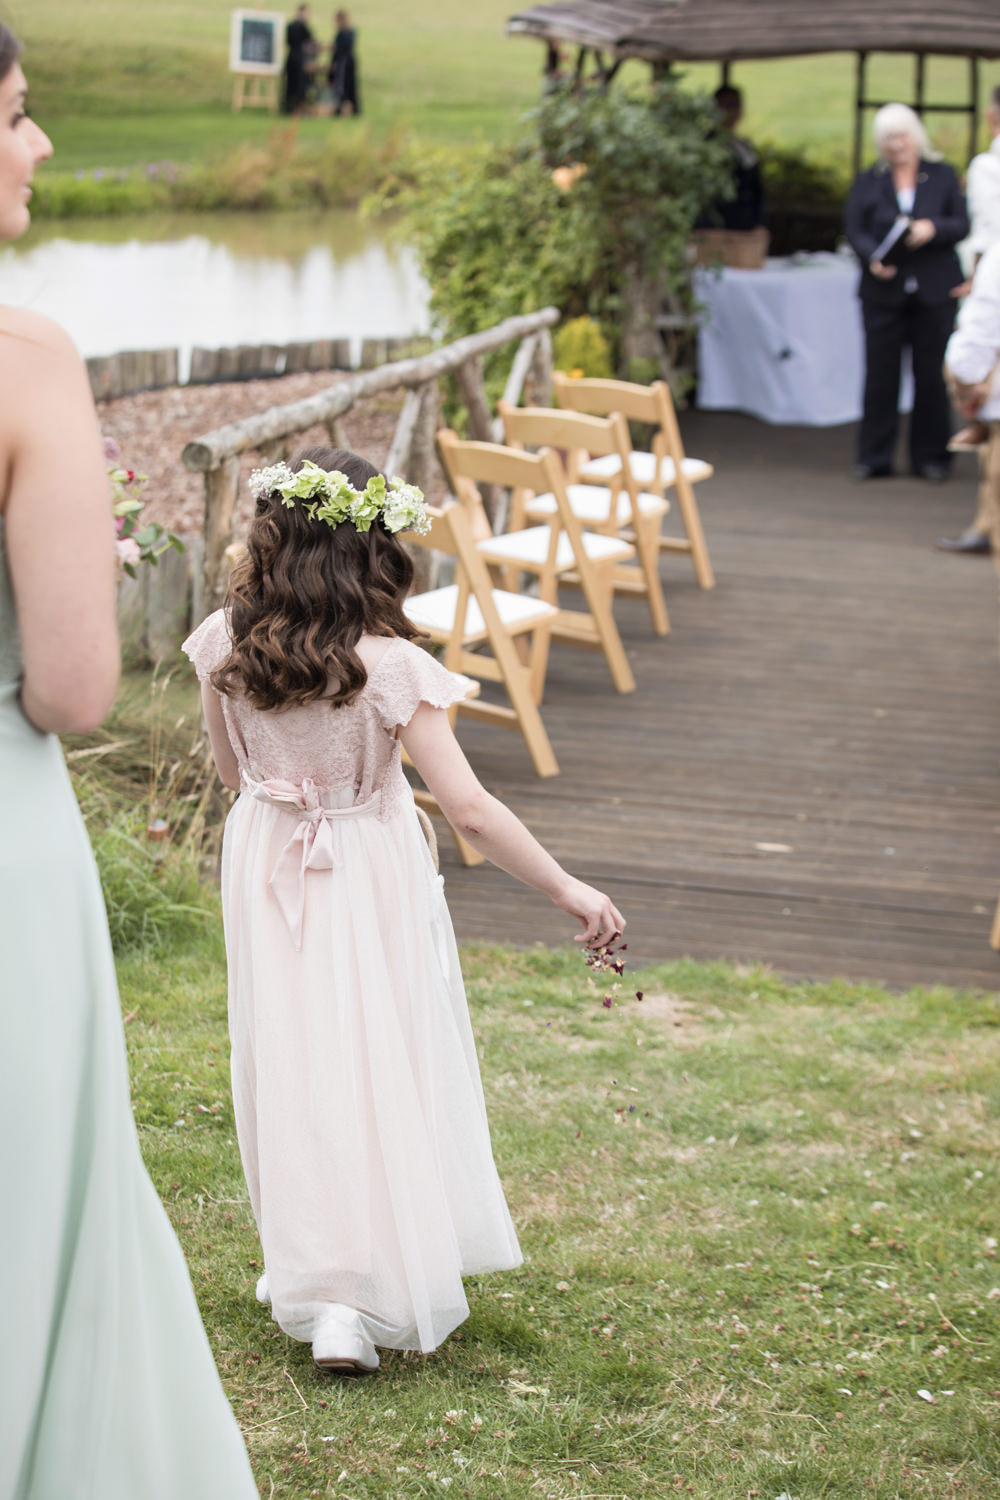 Flower Girl Petal Basket Aisle Ceremony House Meadow Wedding Kerry Ann Duffy Photography